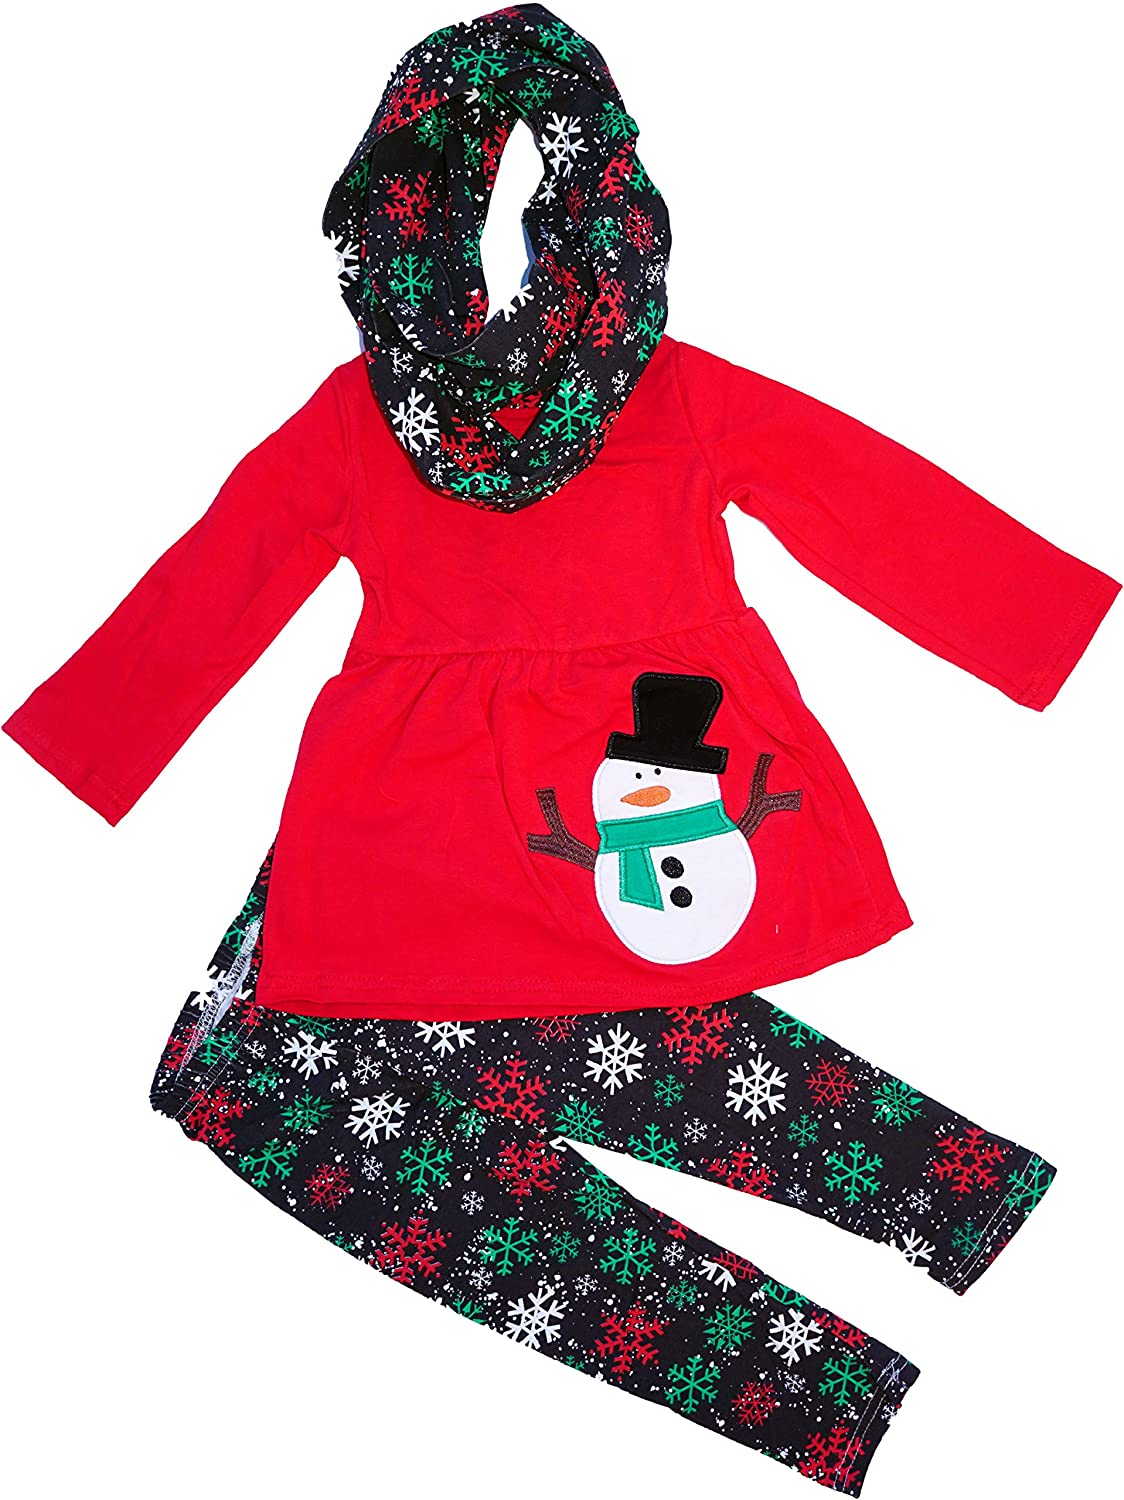 Angeline Boutique Clothing Girls Christmas Holiday Christmas Santa or Snowman Outfit Set